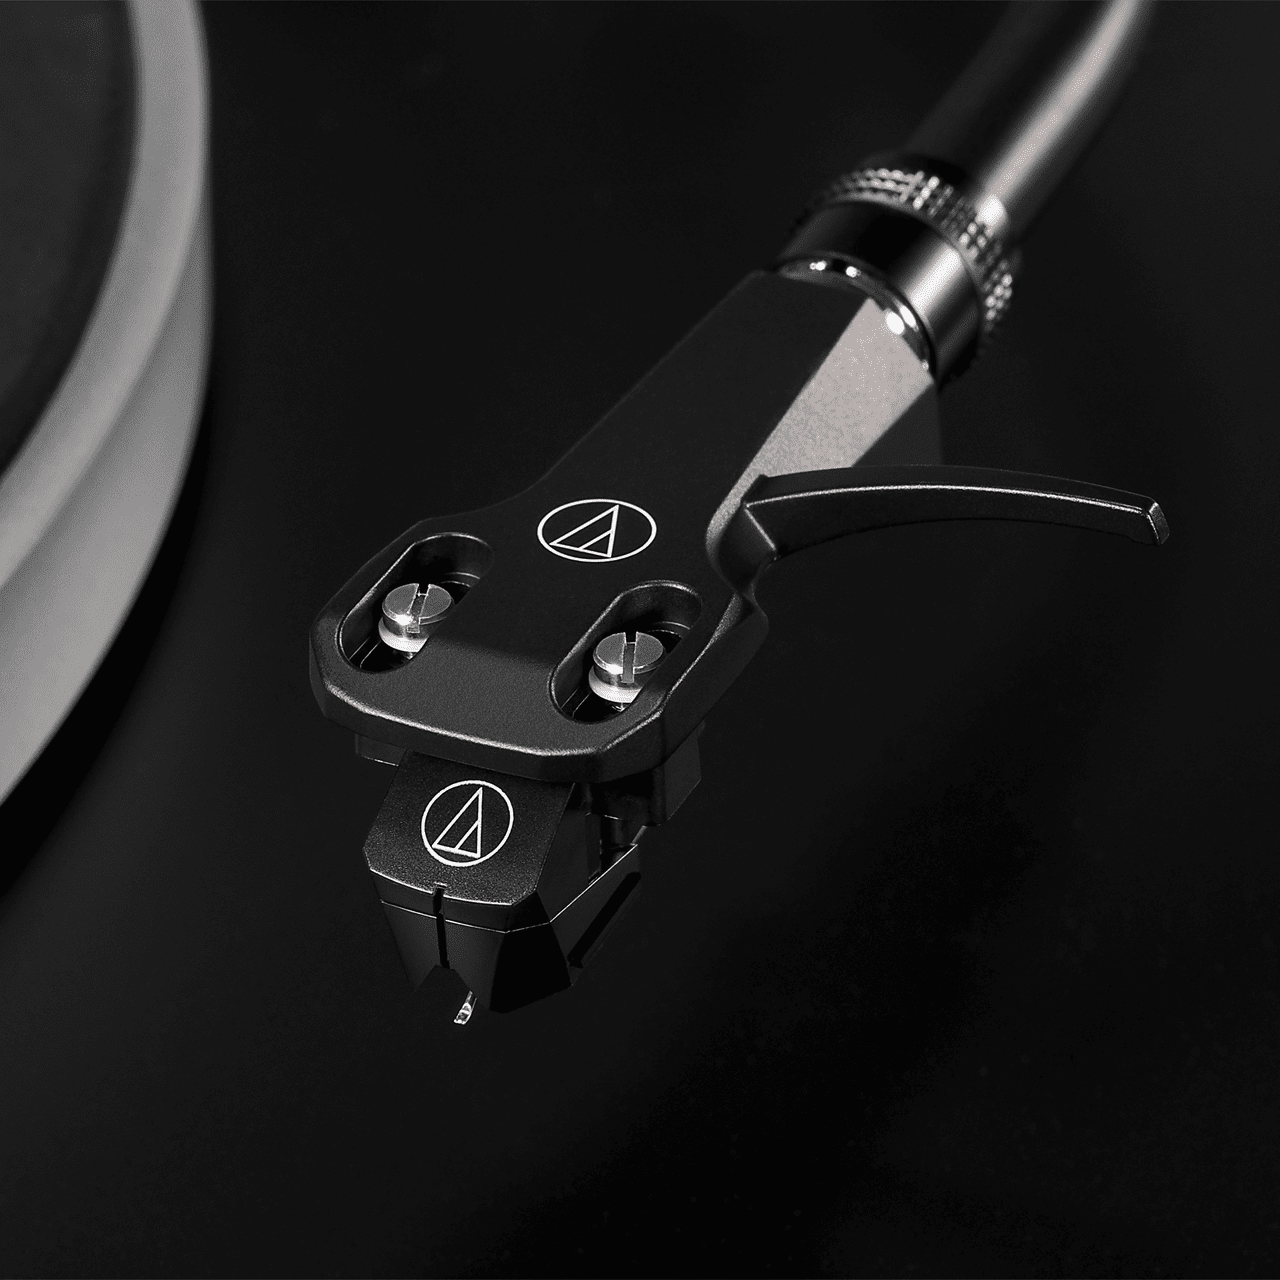 Audio Technica AT-LP5X Direct Drive Turntable - 5